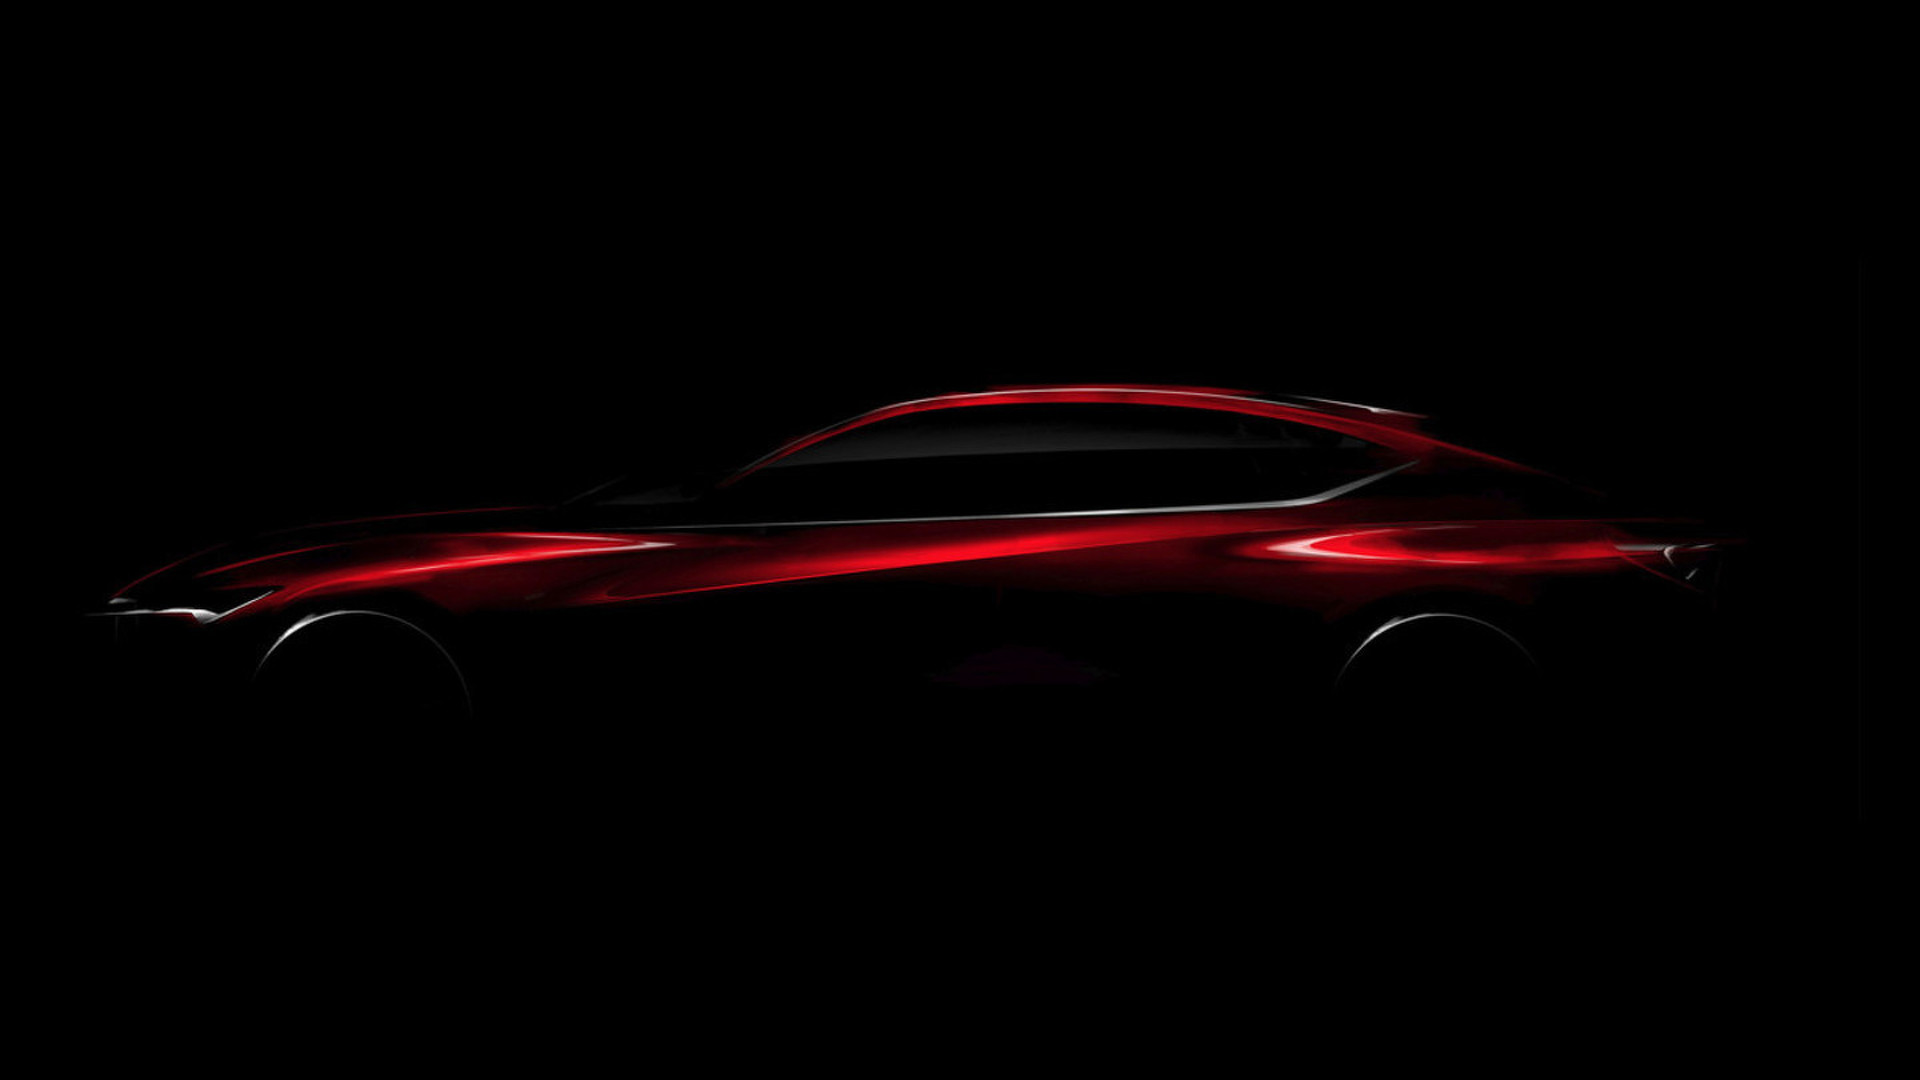 Acura Precision Concept teased, previews future styling direction